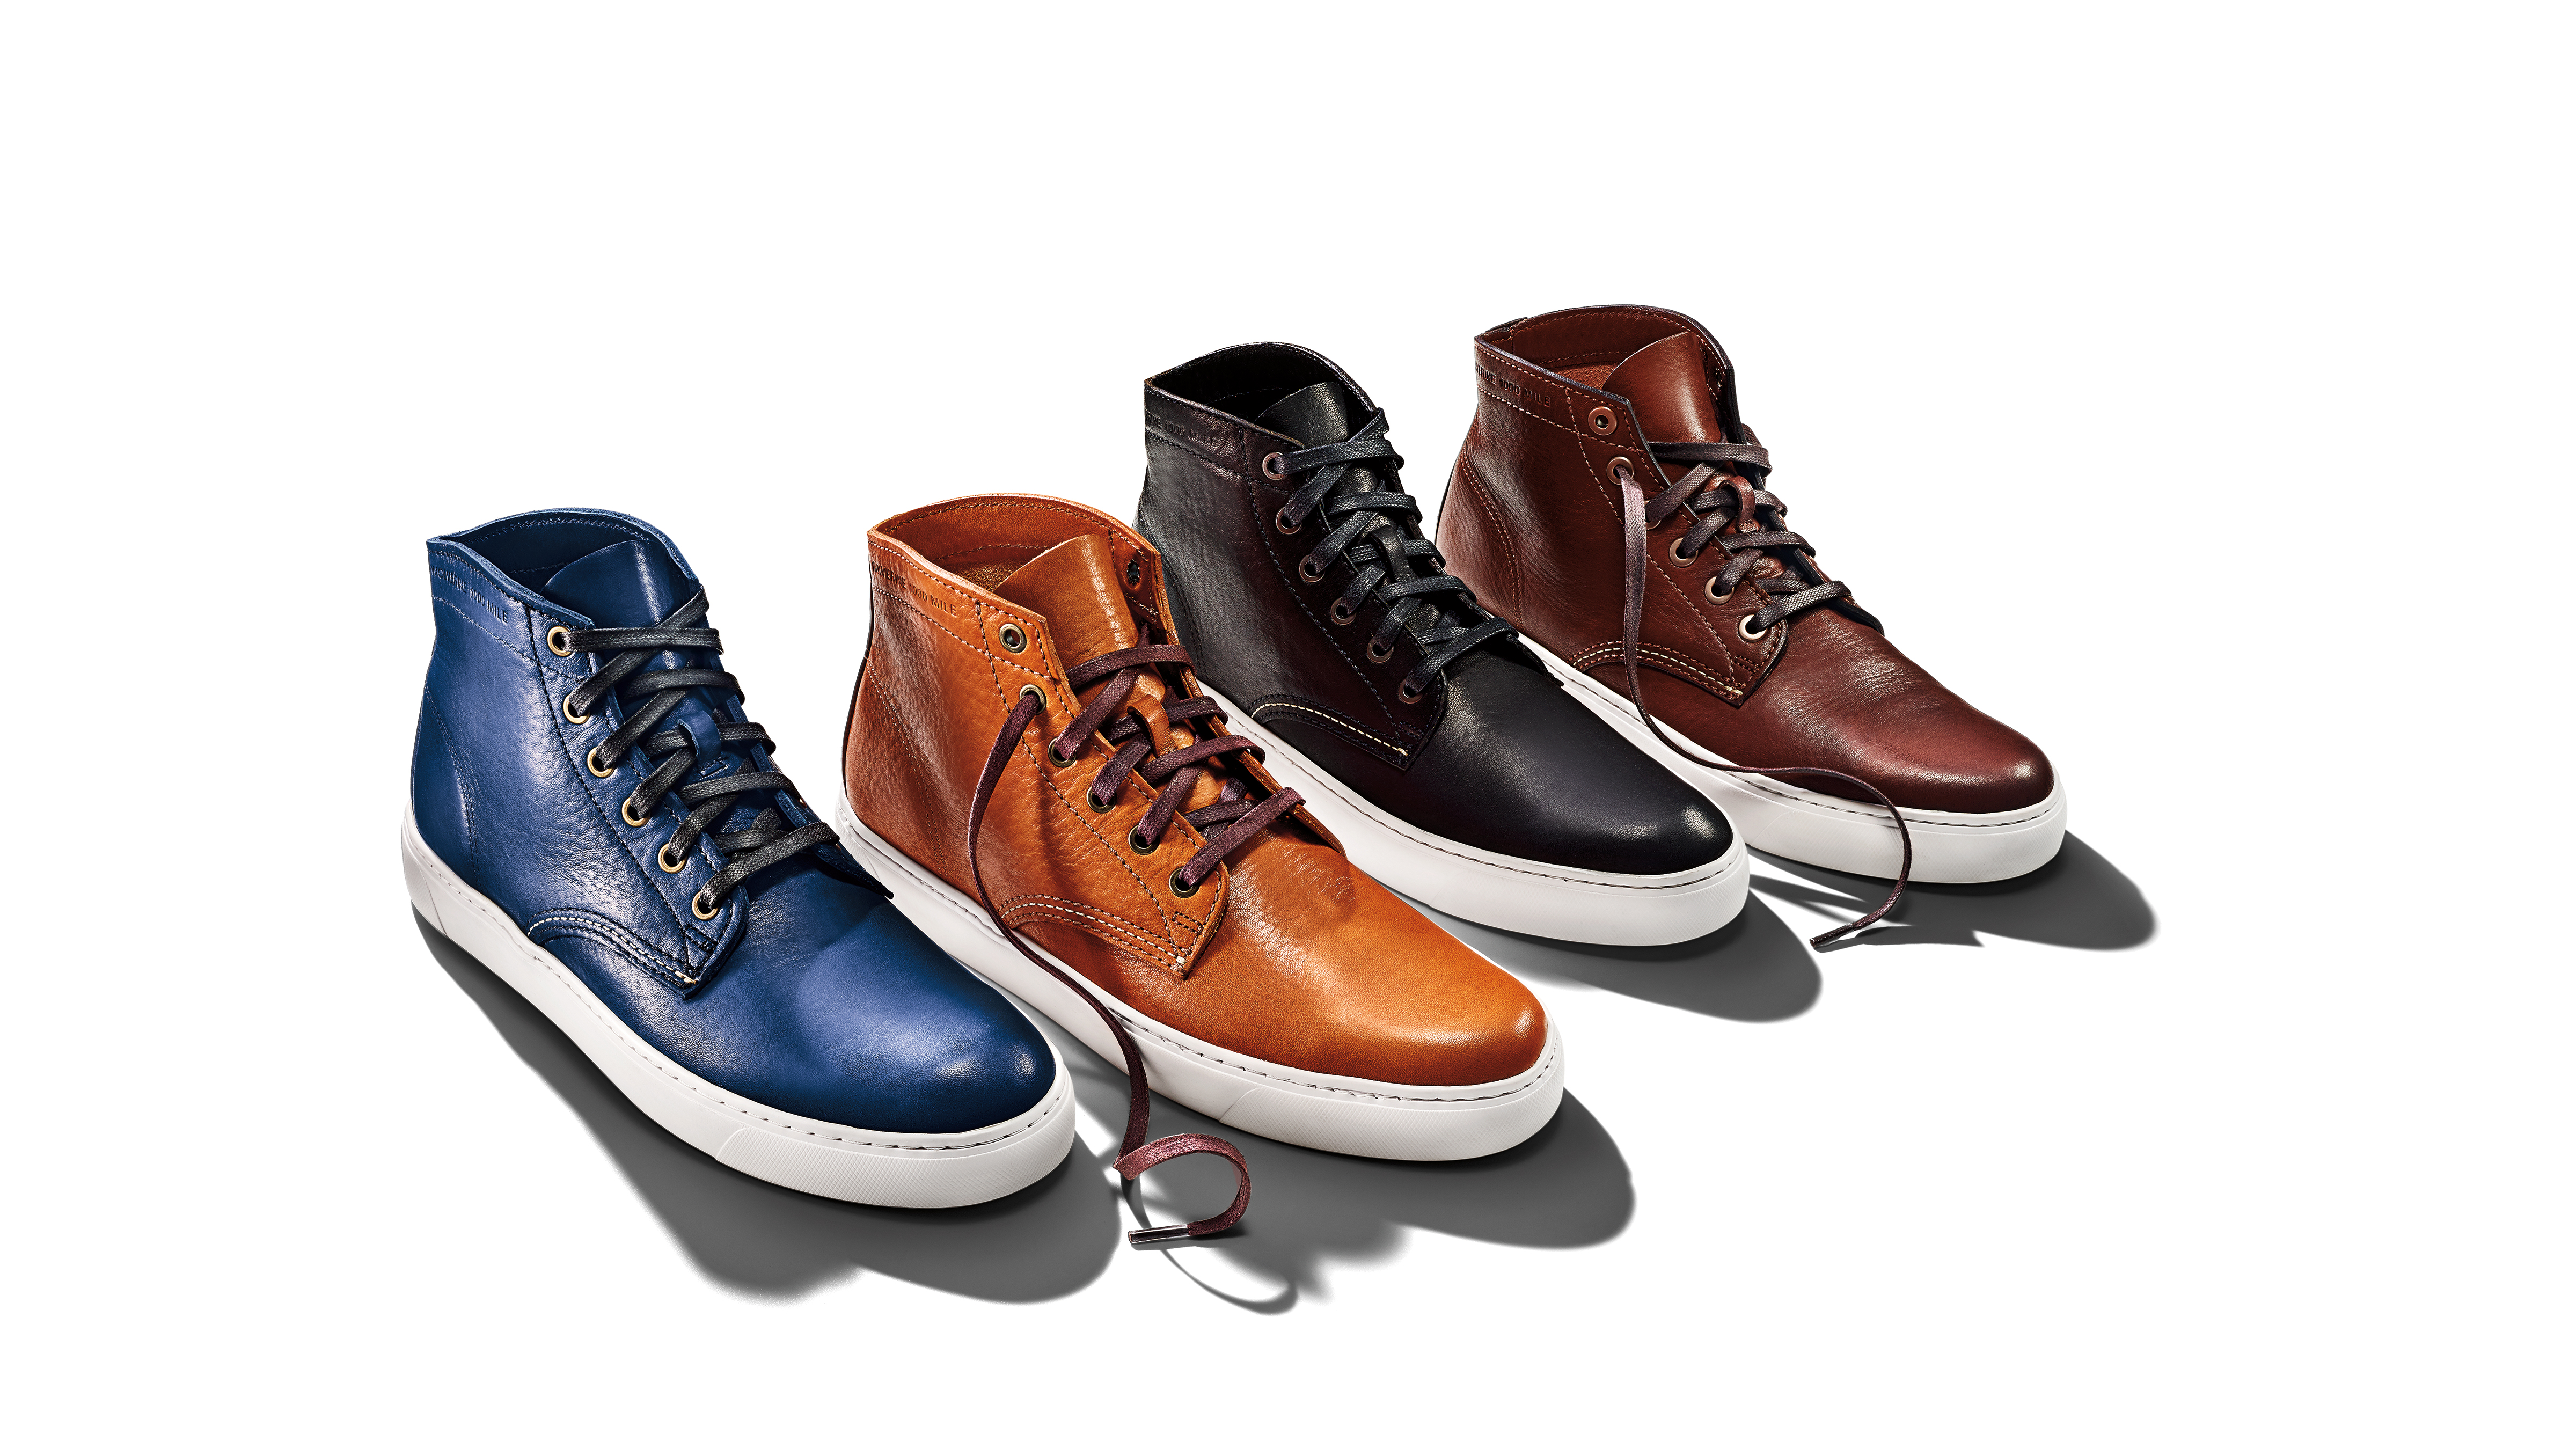 The Stylish, Lightweight Wolverine Sneakers Every Guy Needs